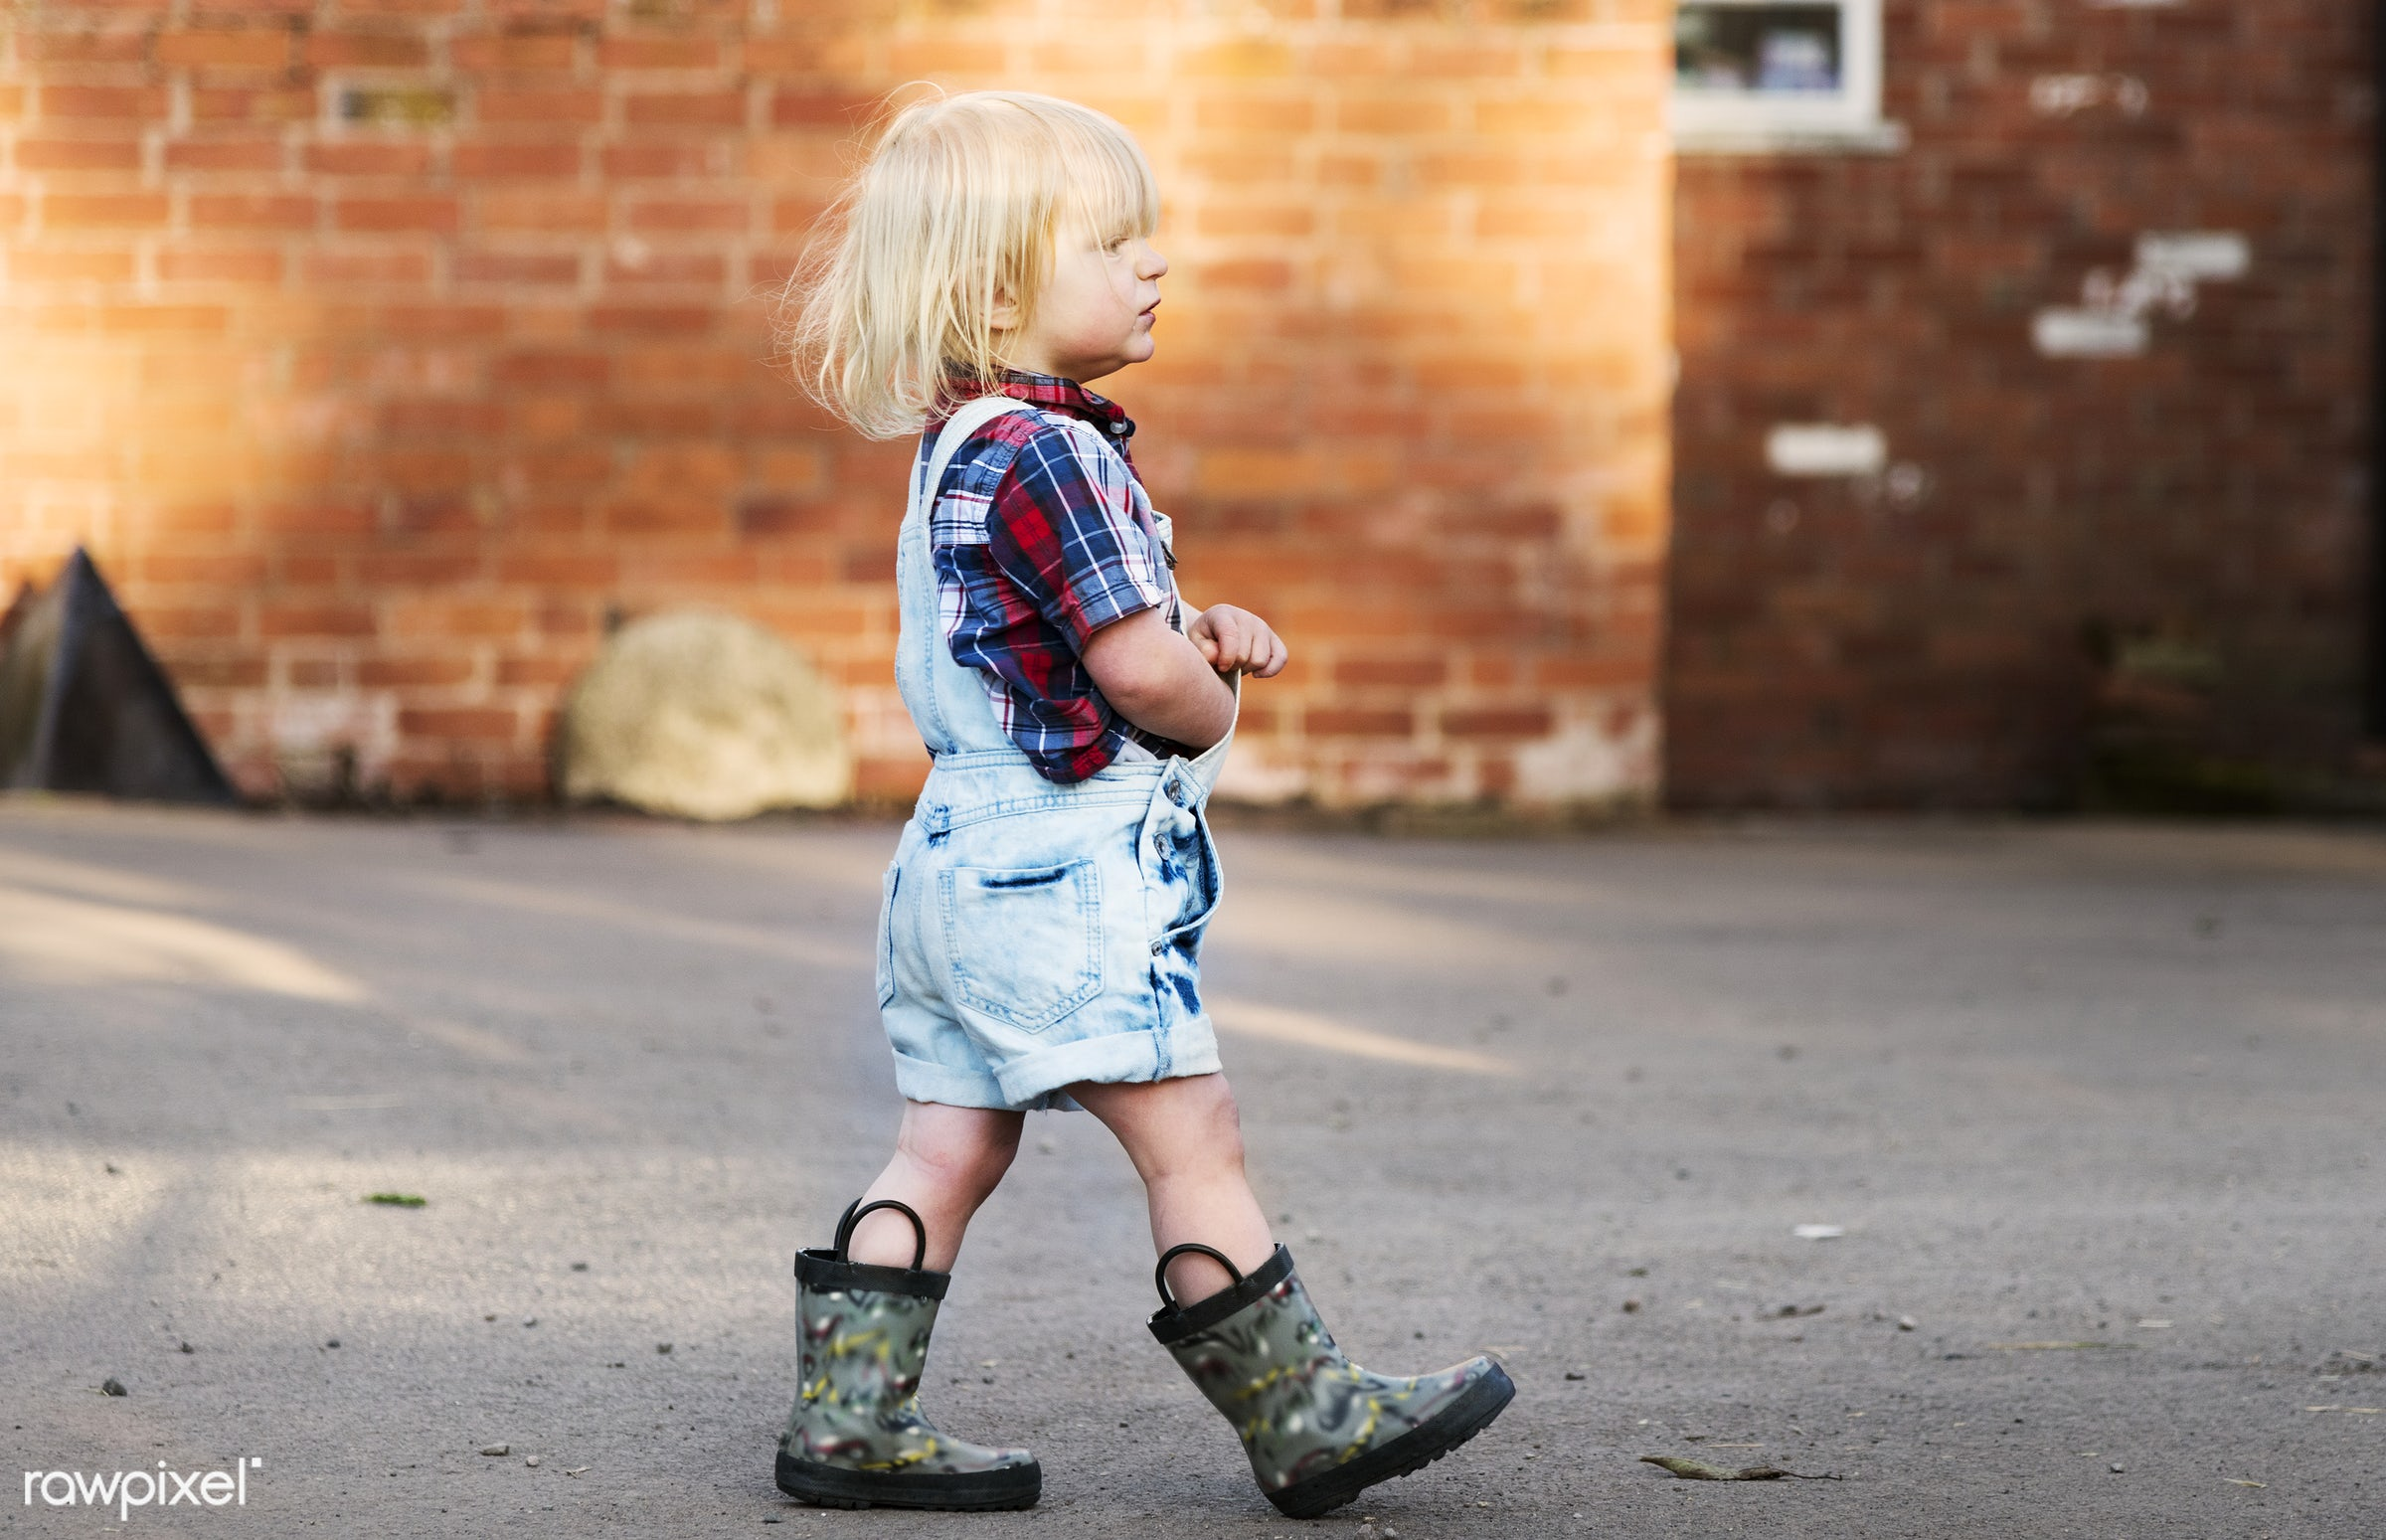 toddler, action, active, activity, adolescence, boy, child, childhood, children, development, early life, early years,...